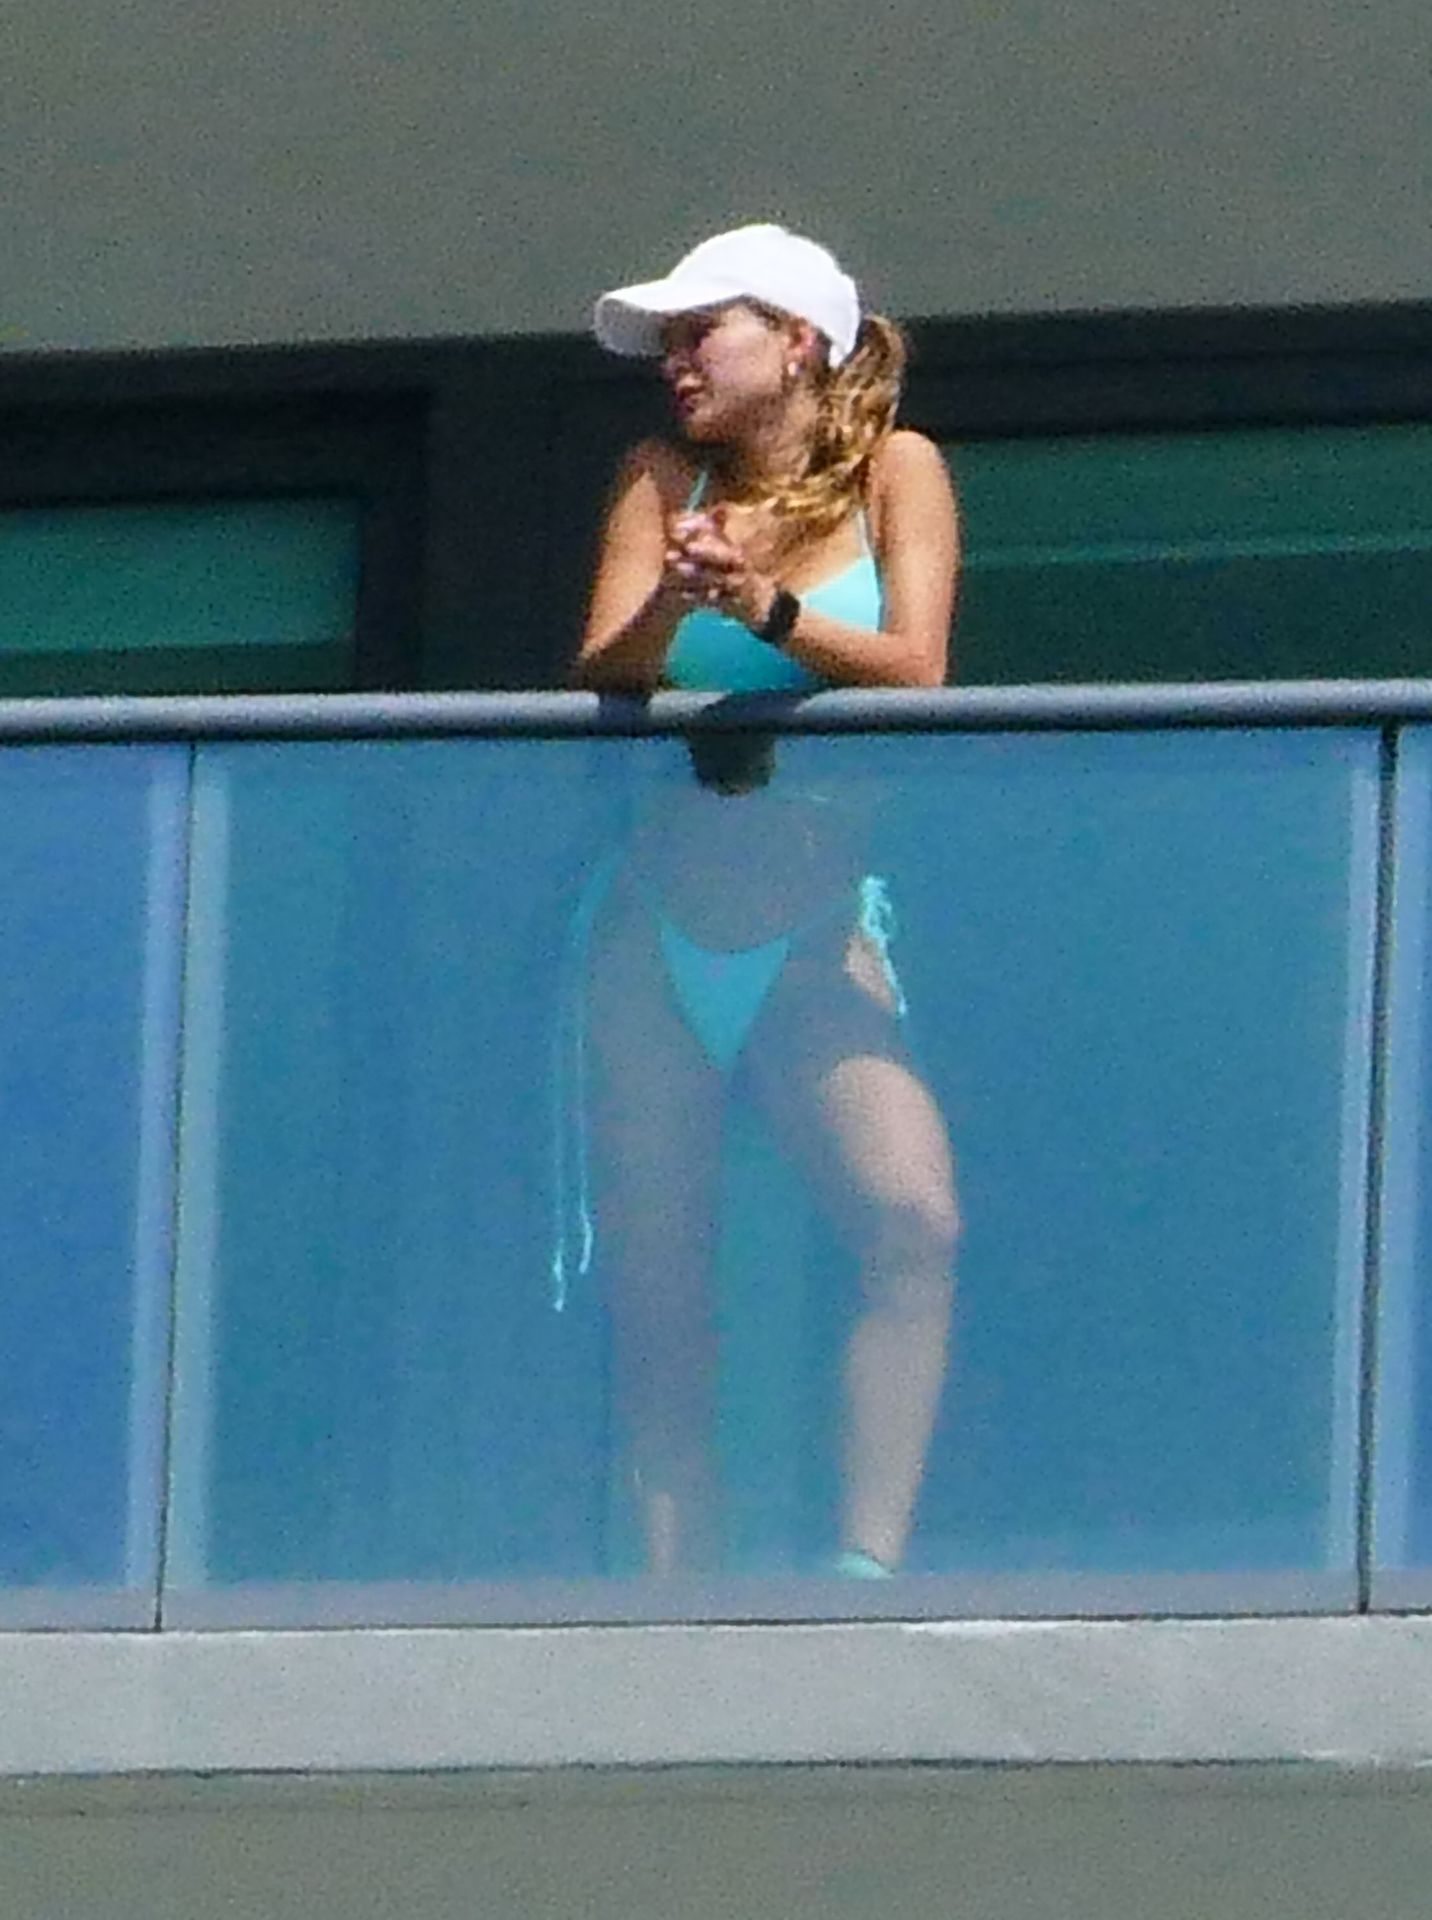 Cindy Prado Shows Off Her Curves In A Small Blue Bikini As She Works Out On A Balcony In Miami 0016